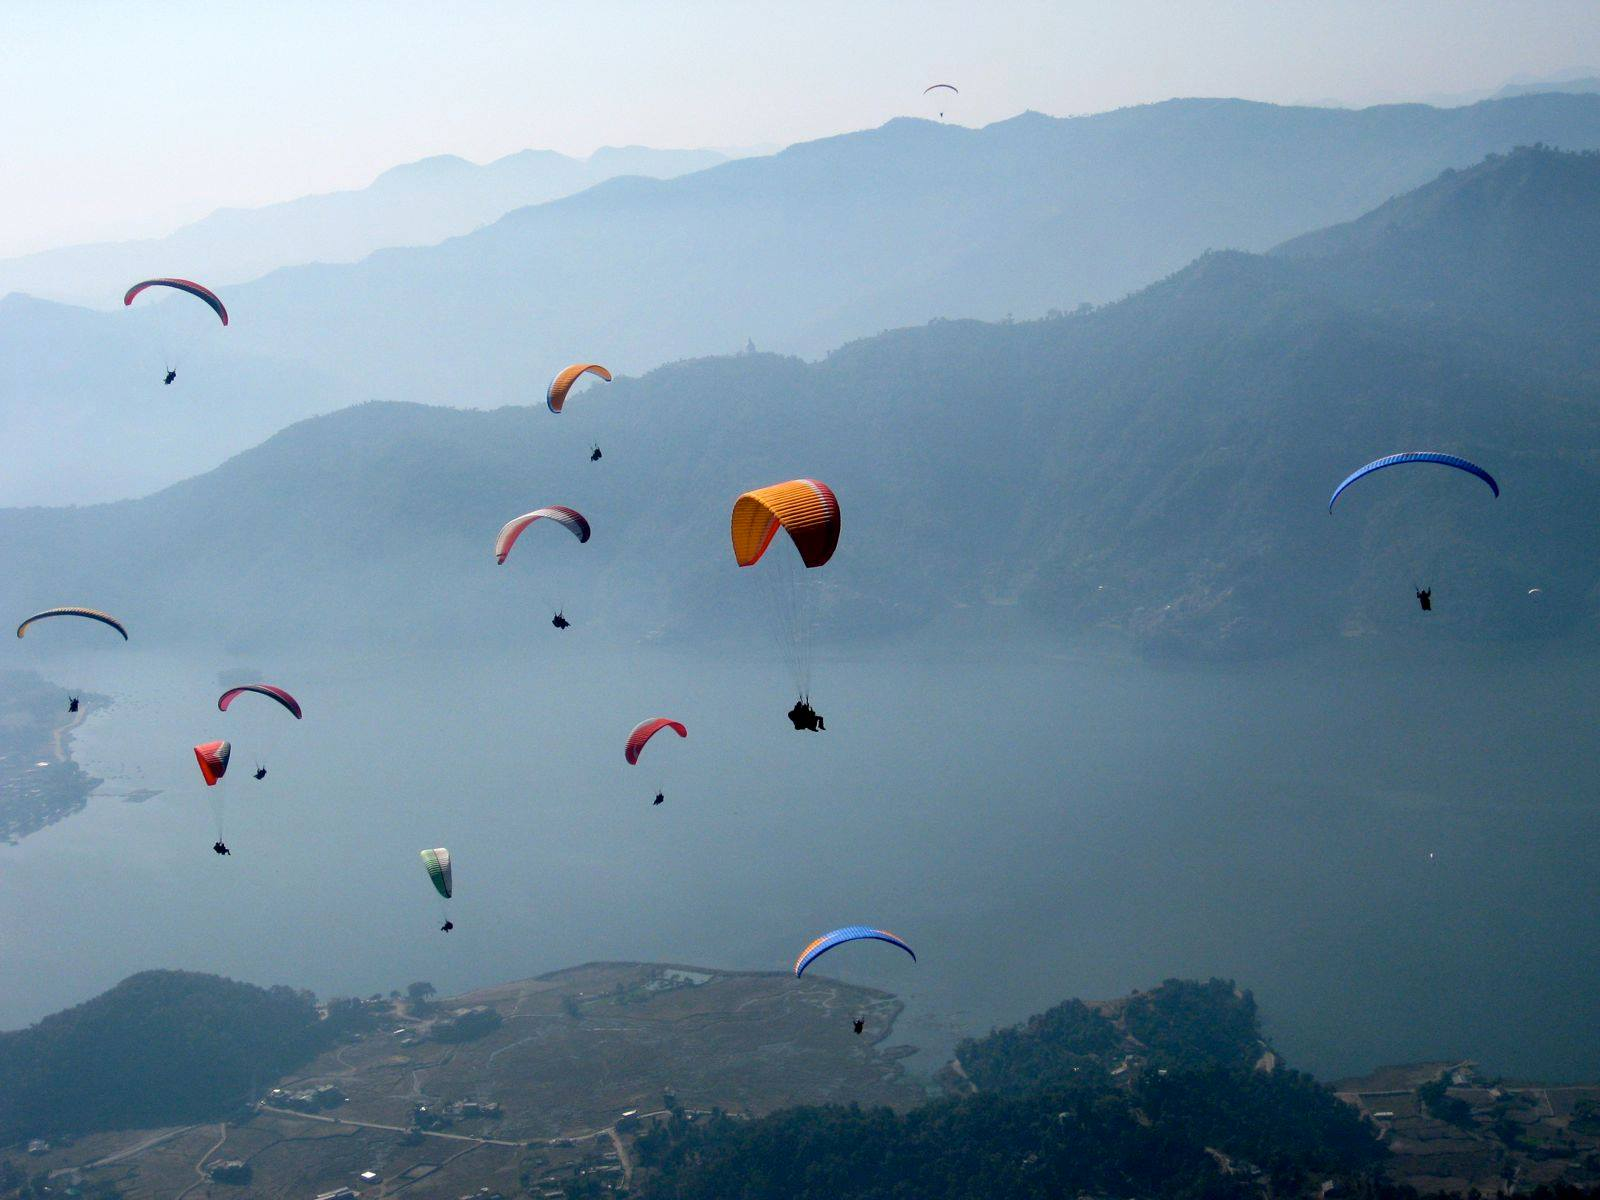 International paragliding competition at Bir from 24-30 October